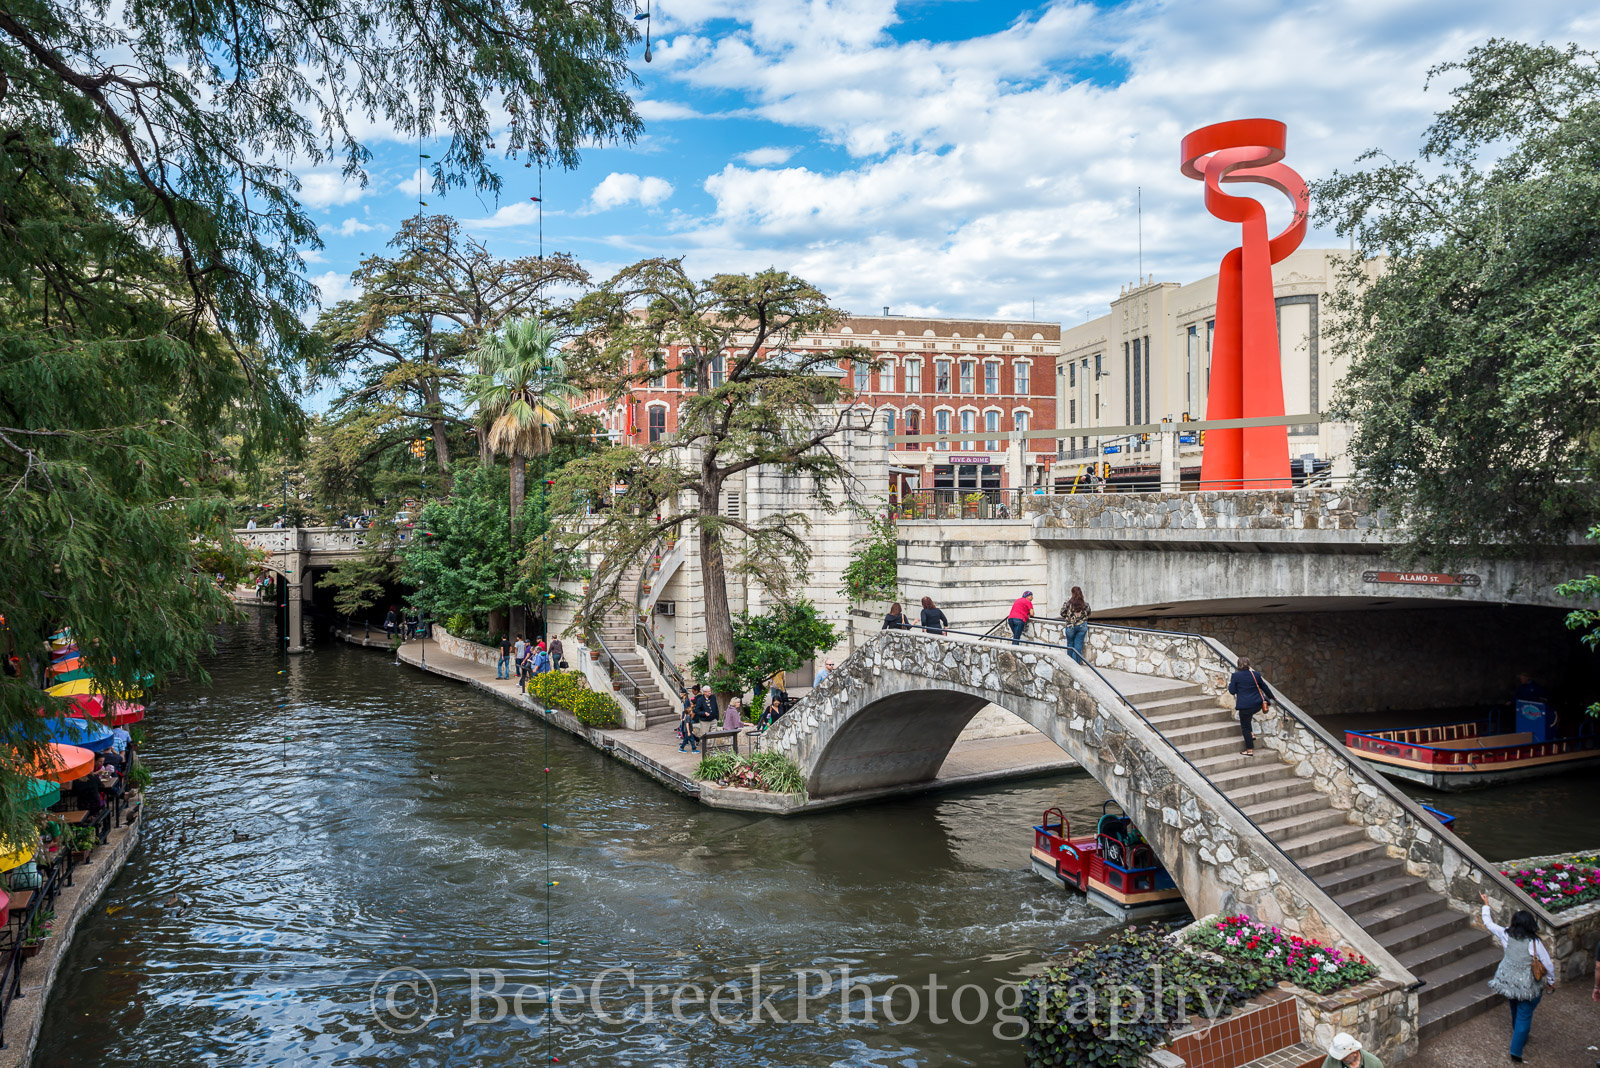 Riverwalk, San Antonio, Torch of Friendship, city, cityscape, cityscapes, clouds, colorful, colorful umbrellas, downtown, river boats, tourist, water, photo